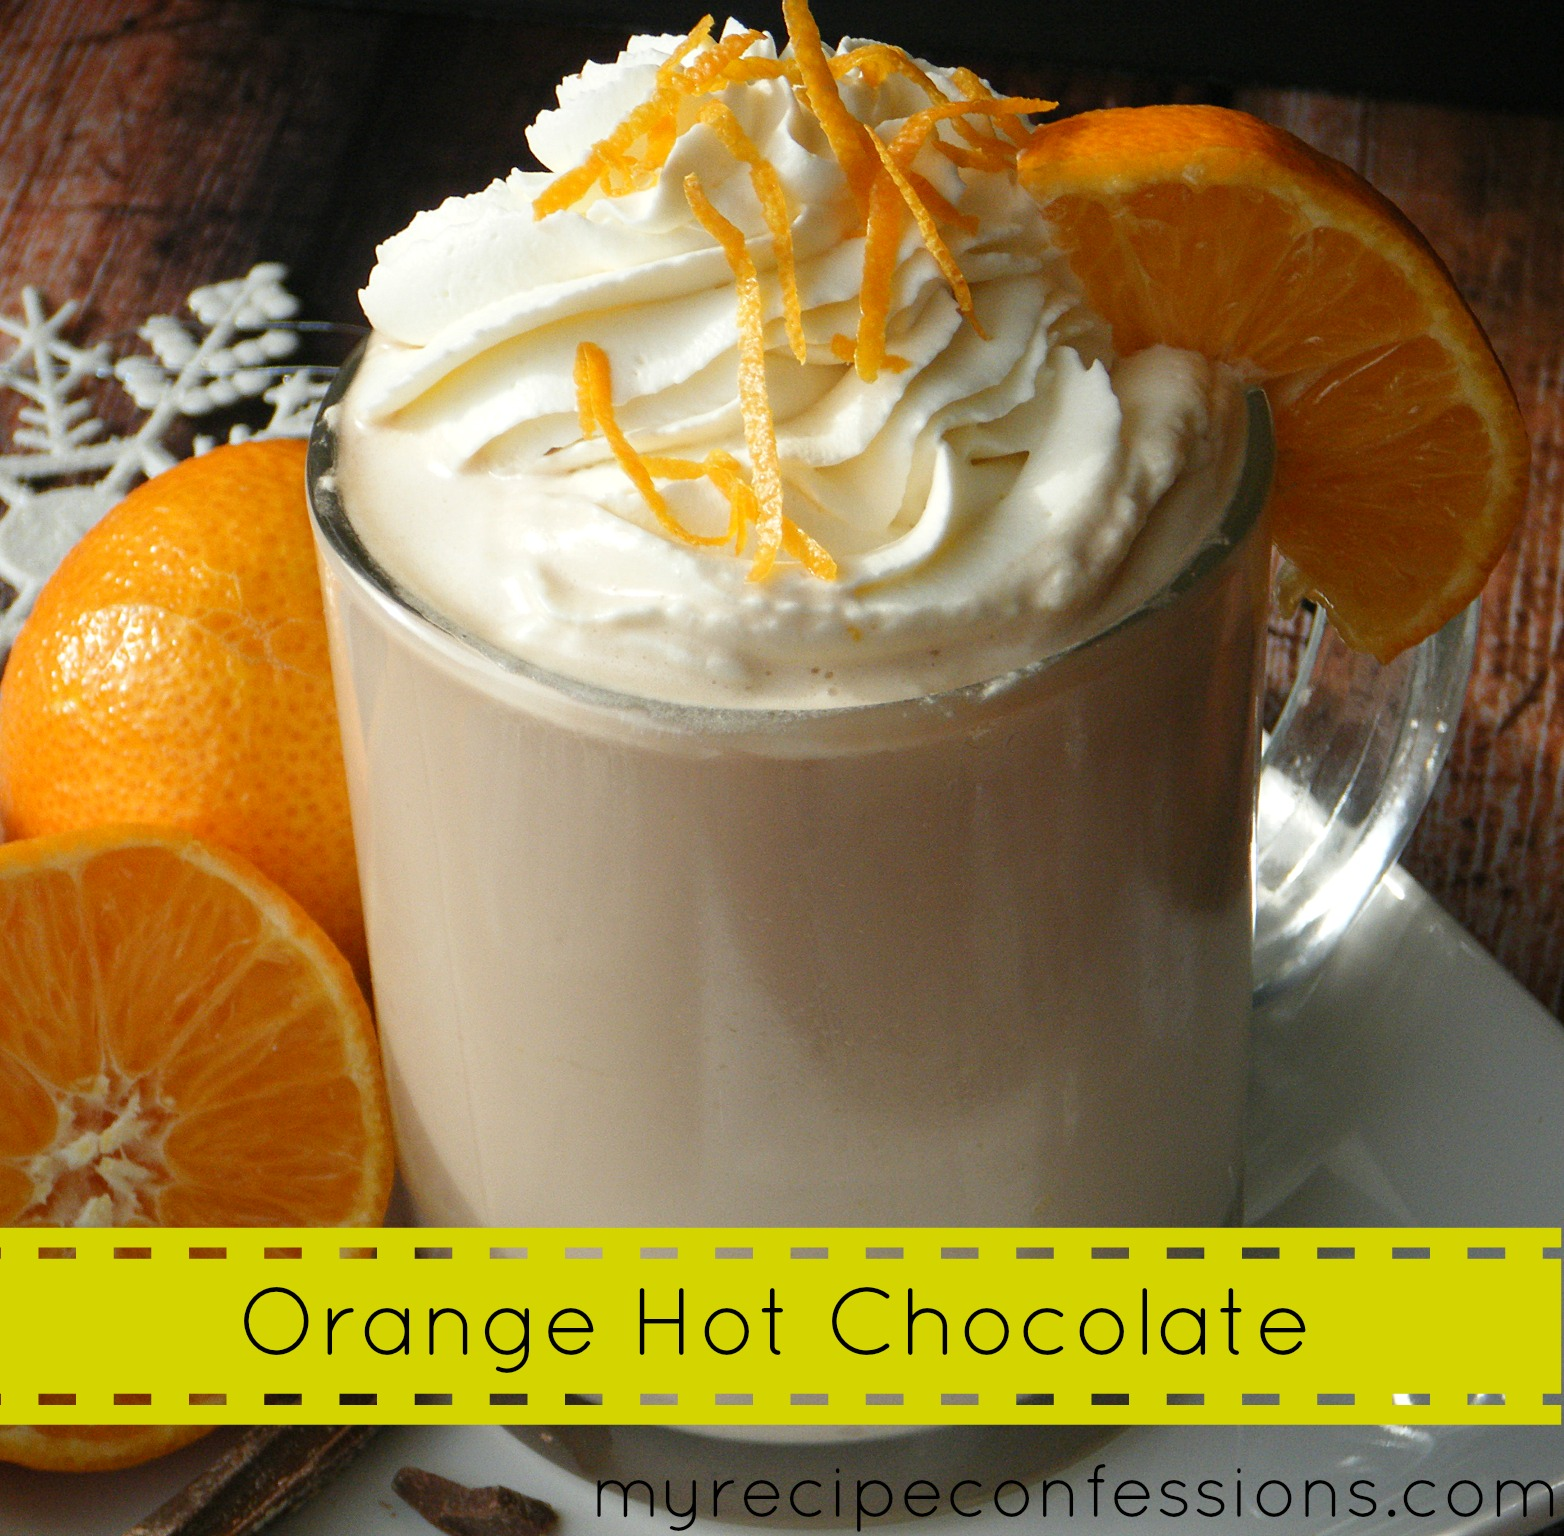 Try something new and add a little orange to your hot chocolate! Source:http://myrecipeconfessions.com